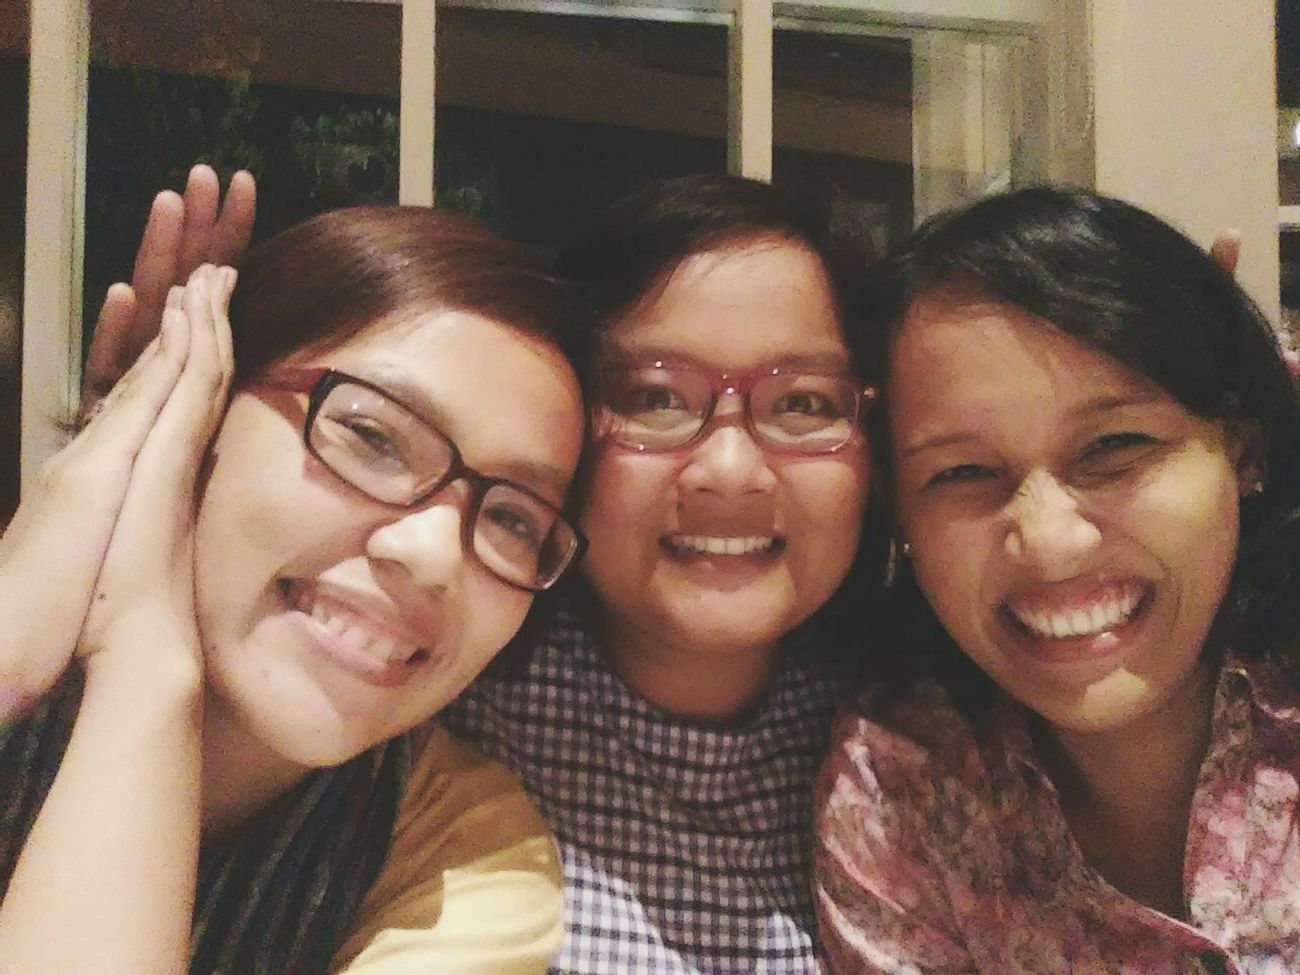 There are some people in life that make you laugh a little louder and smile a little bigger ~ unknown BFF ❤ BFF Time Hanging Out Enjoying Life Friendship Wefie Taking Photo